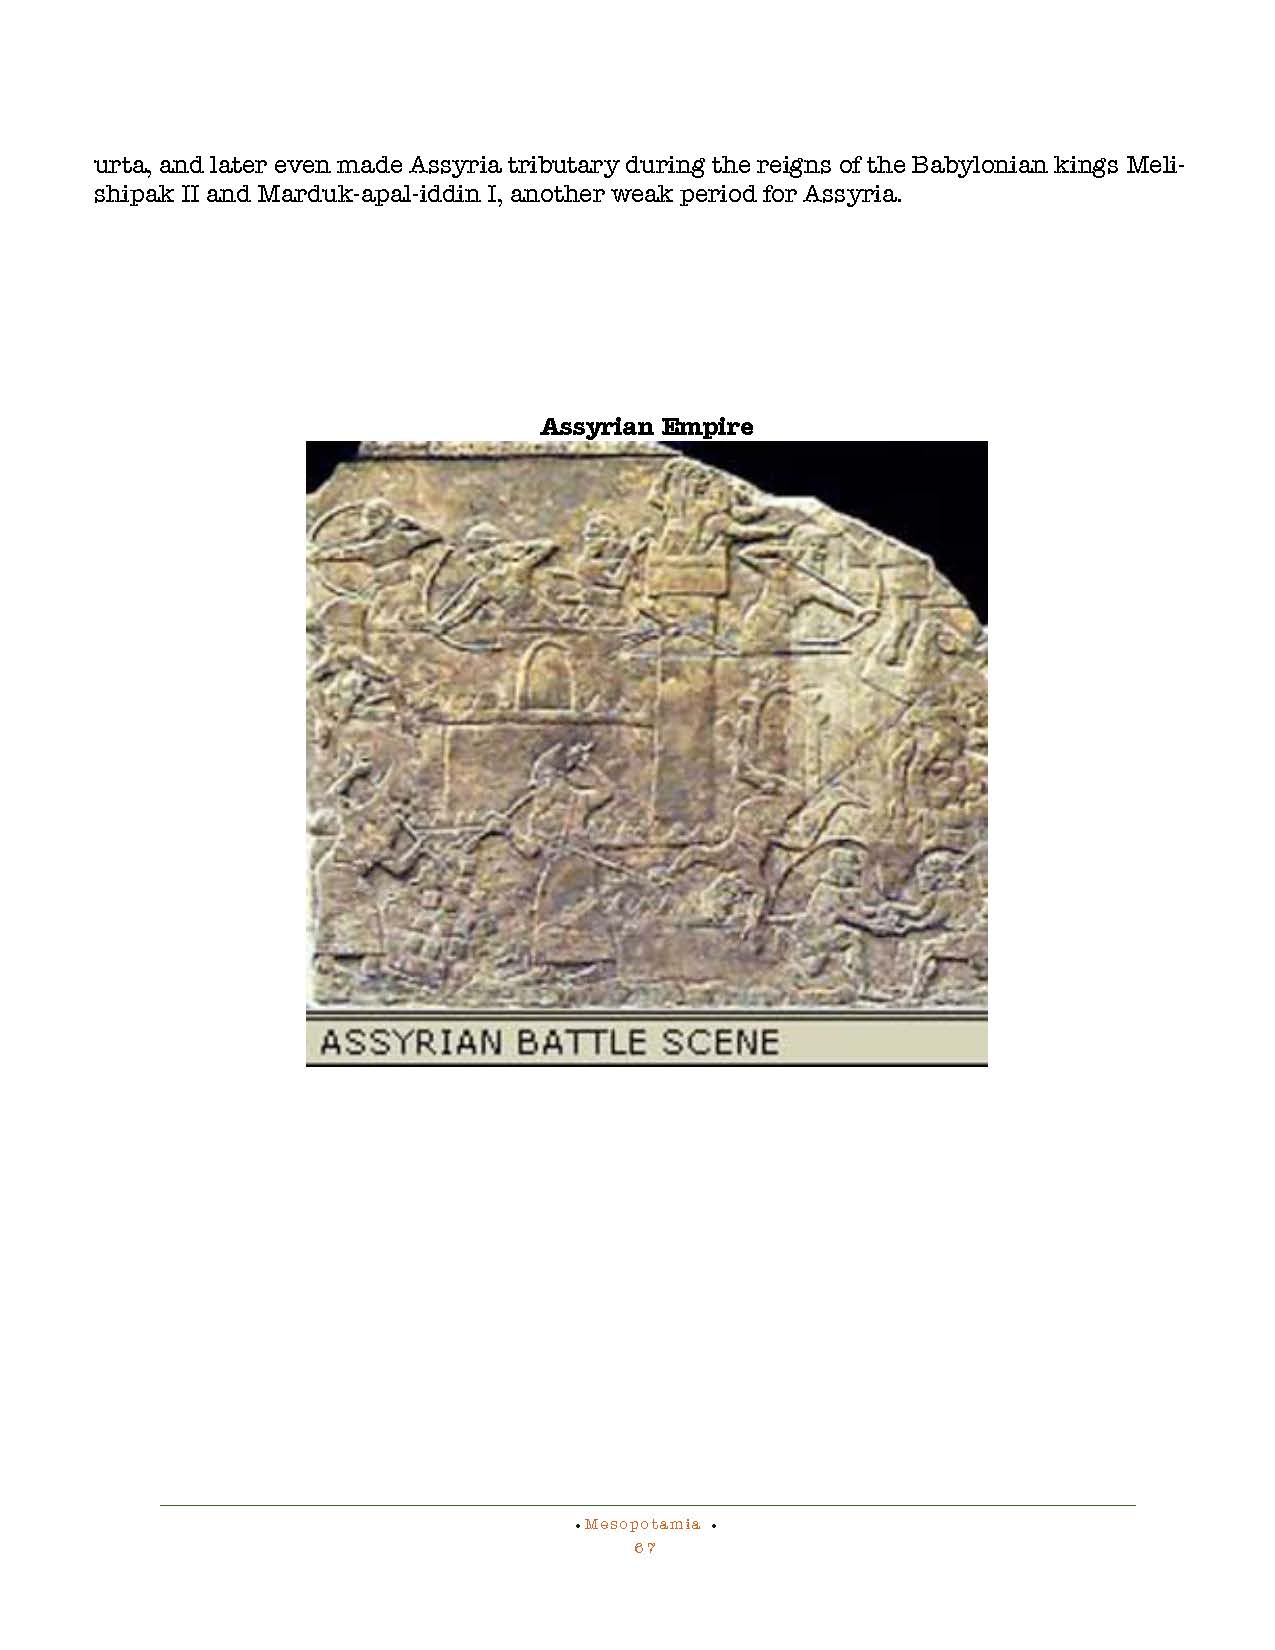 HOCE- Fertile Crescent Notes_Page_067.jpg